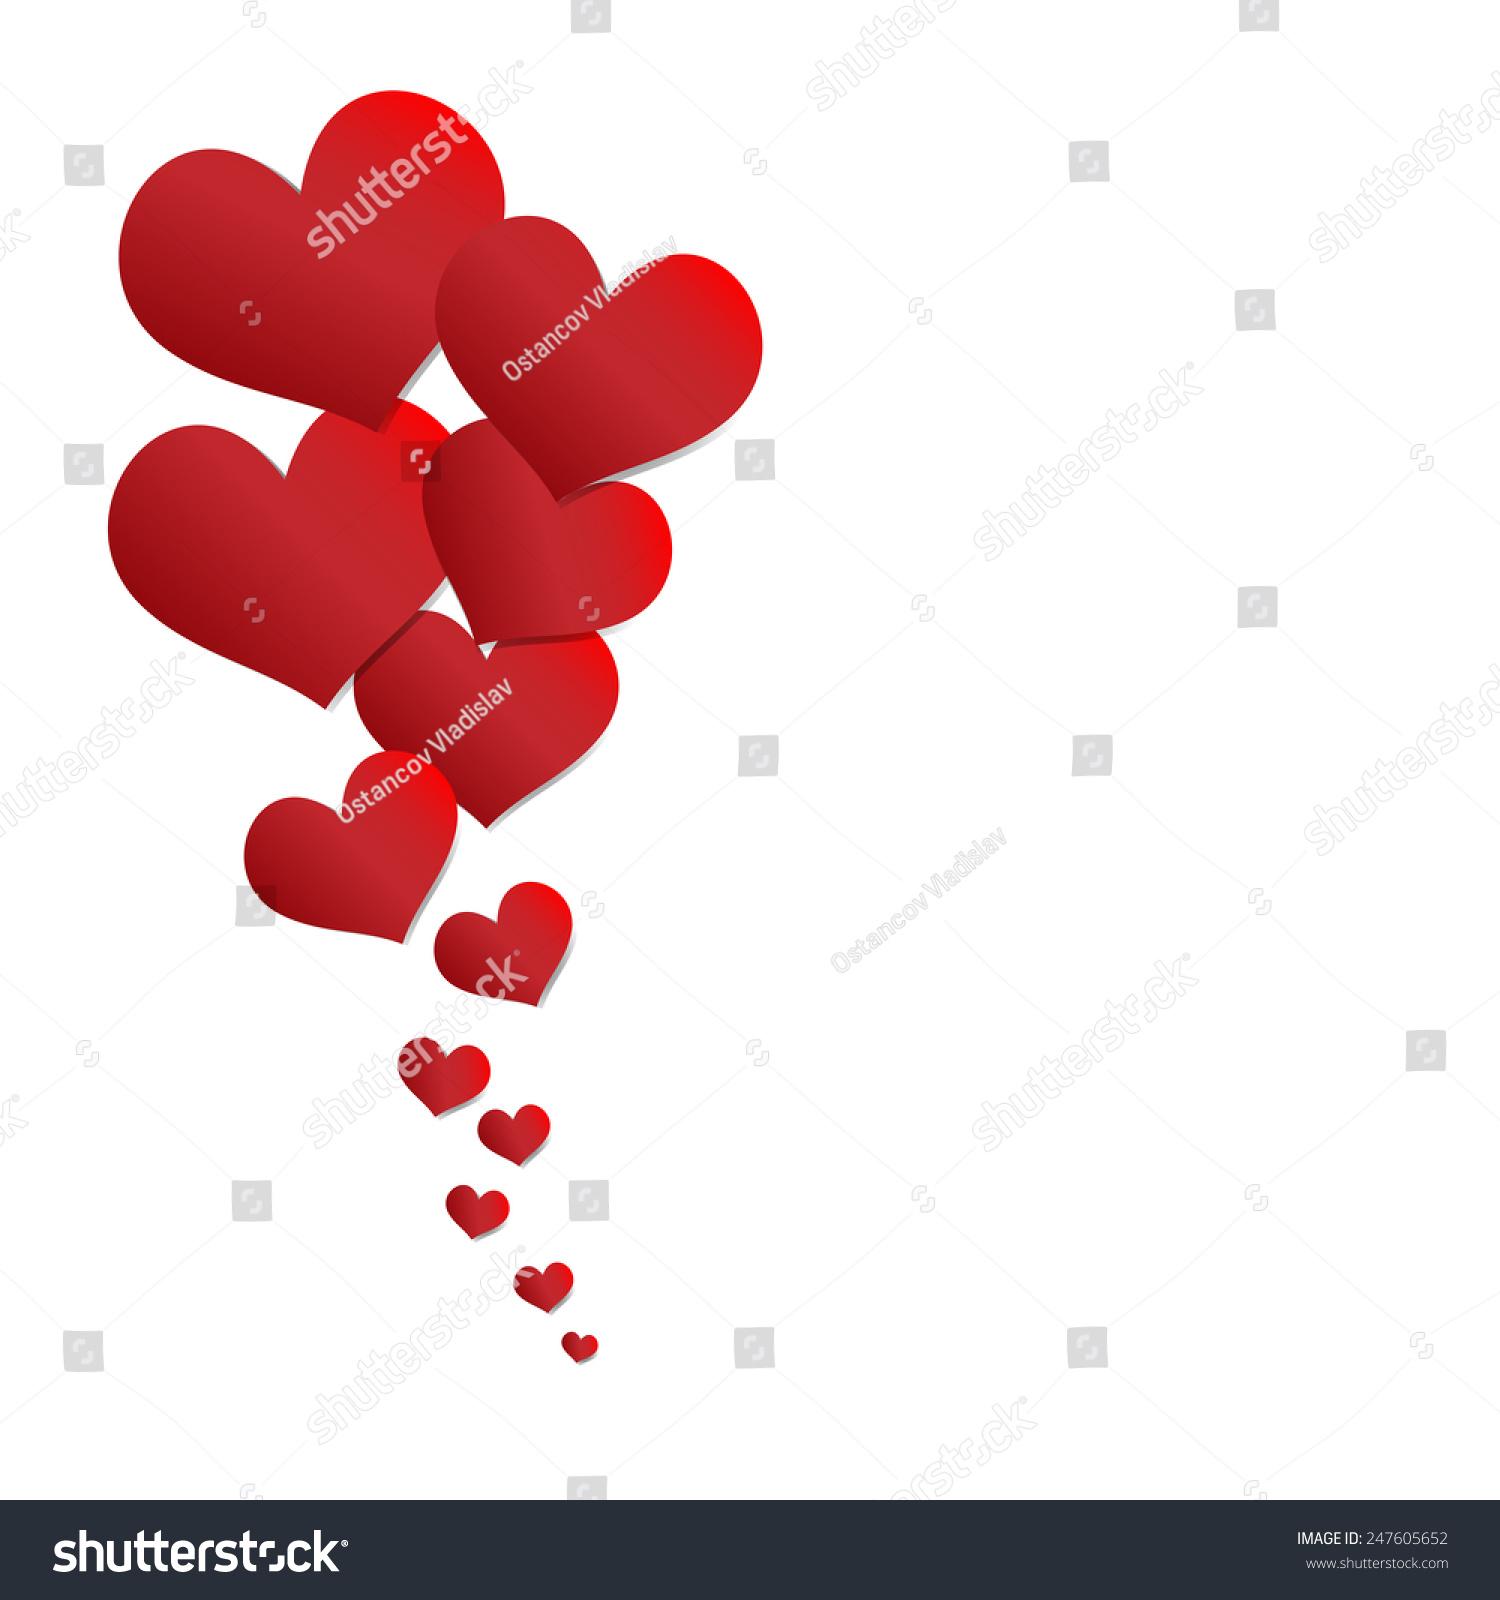 paper hearts valentines day card stock vector 247605652 shutterstock